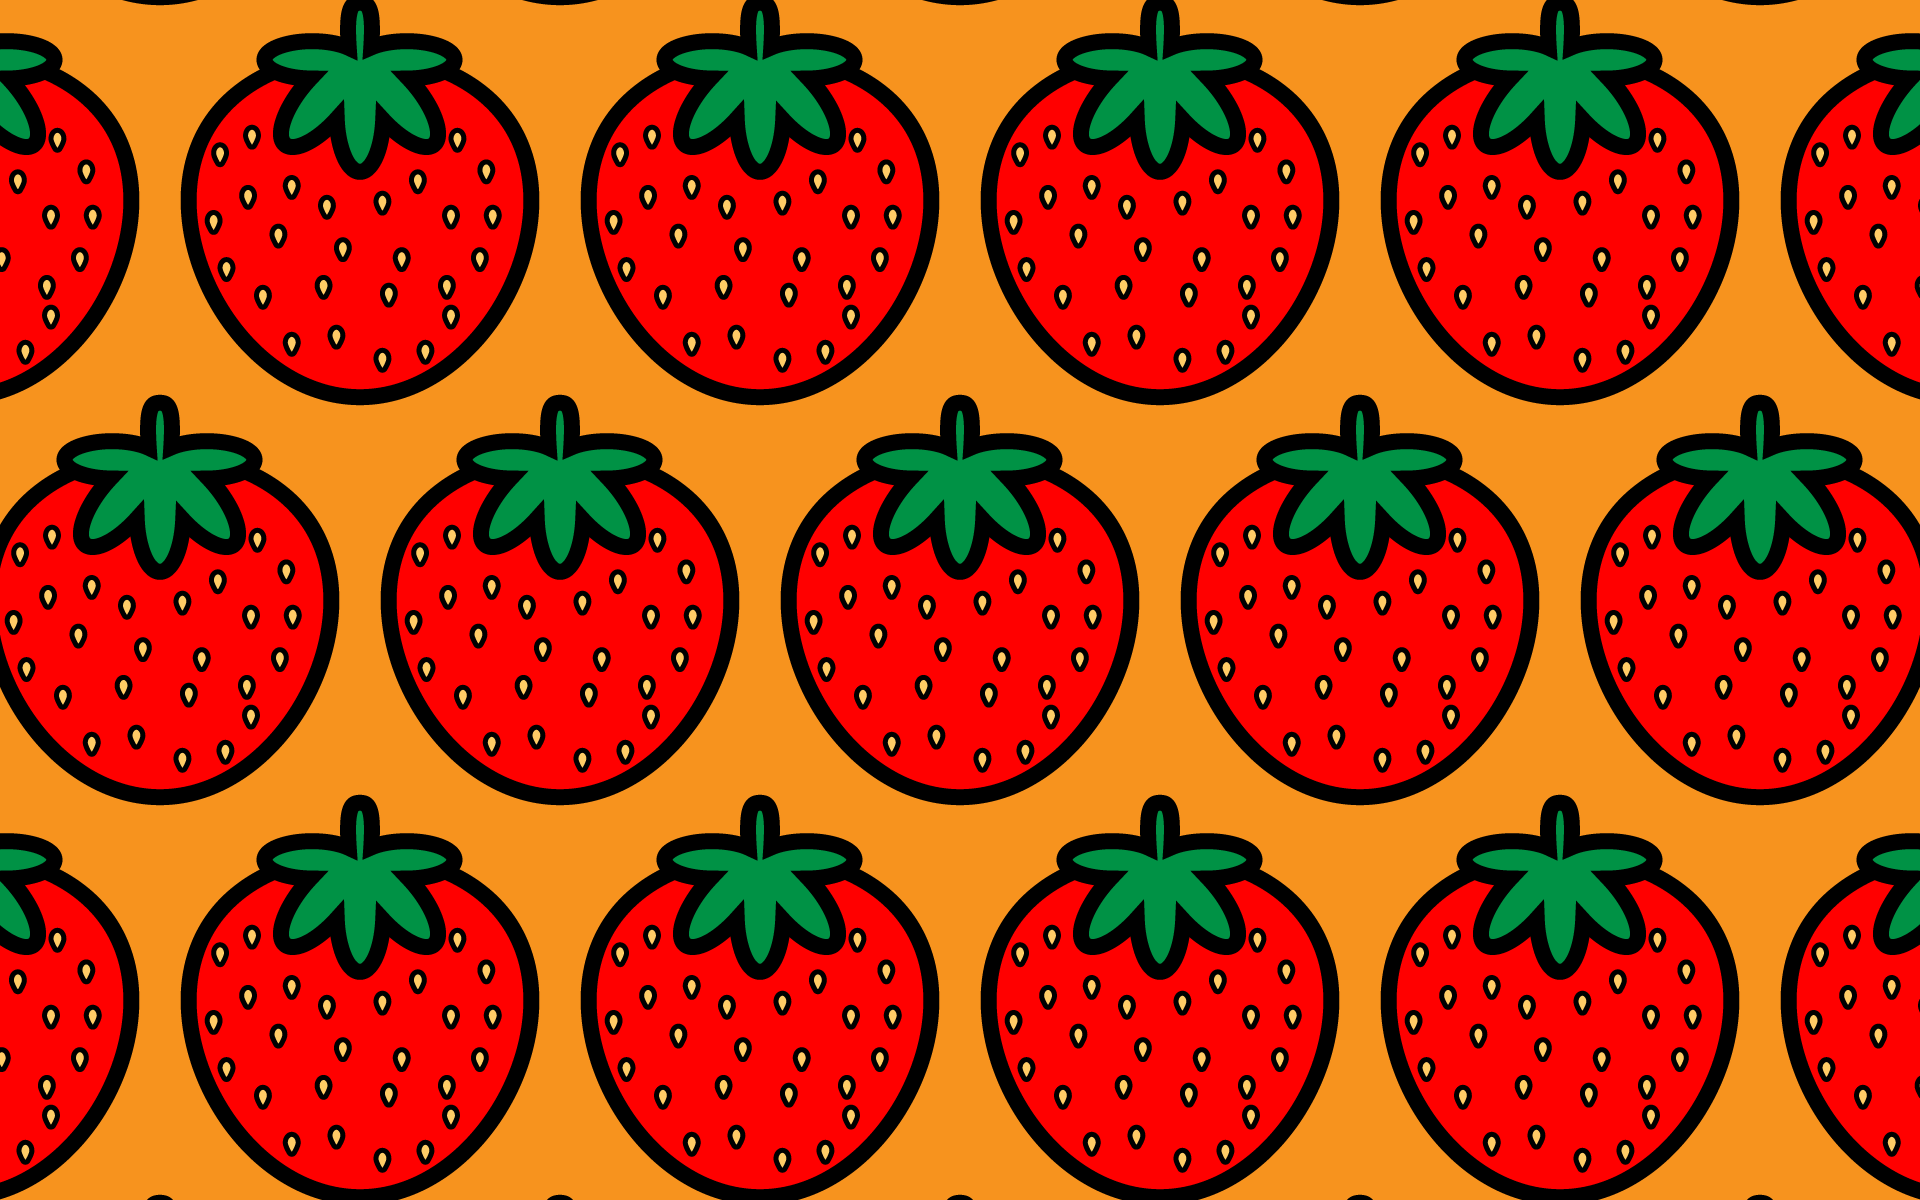 wallpaper1_strawberry-fill-orange-pc